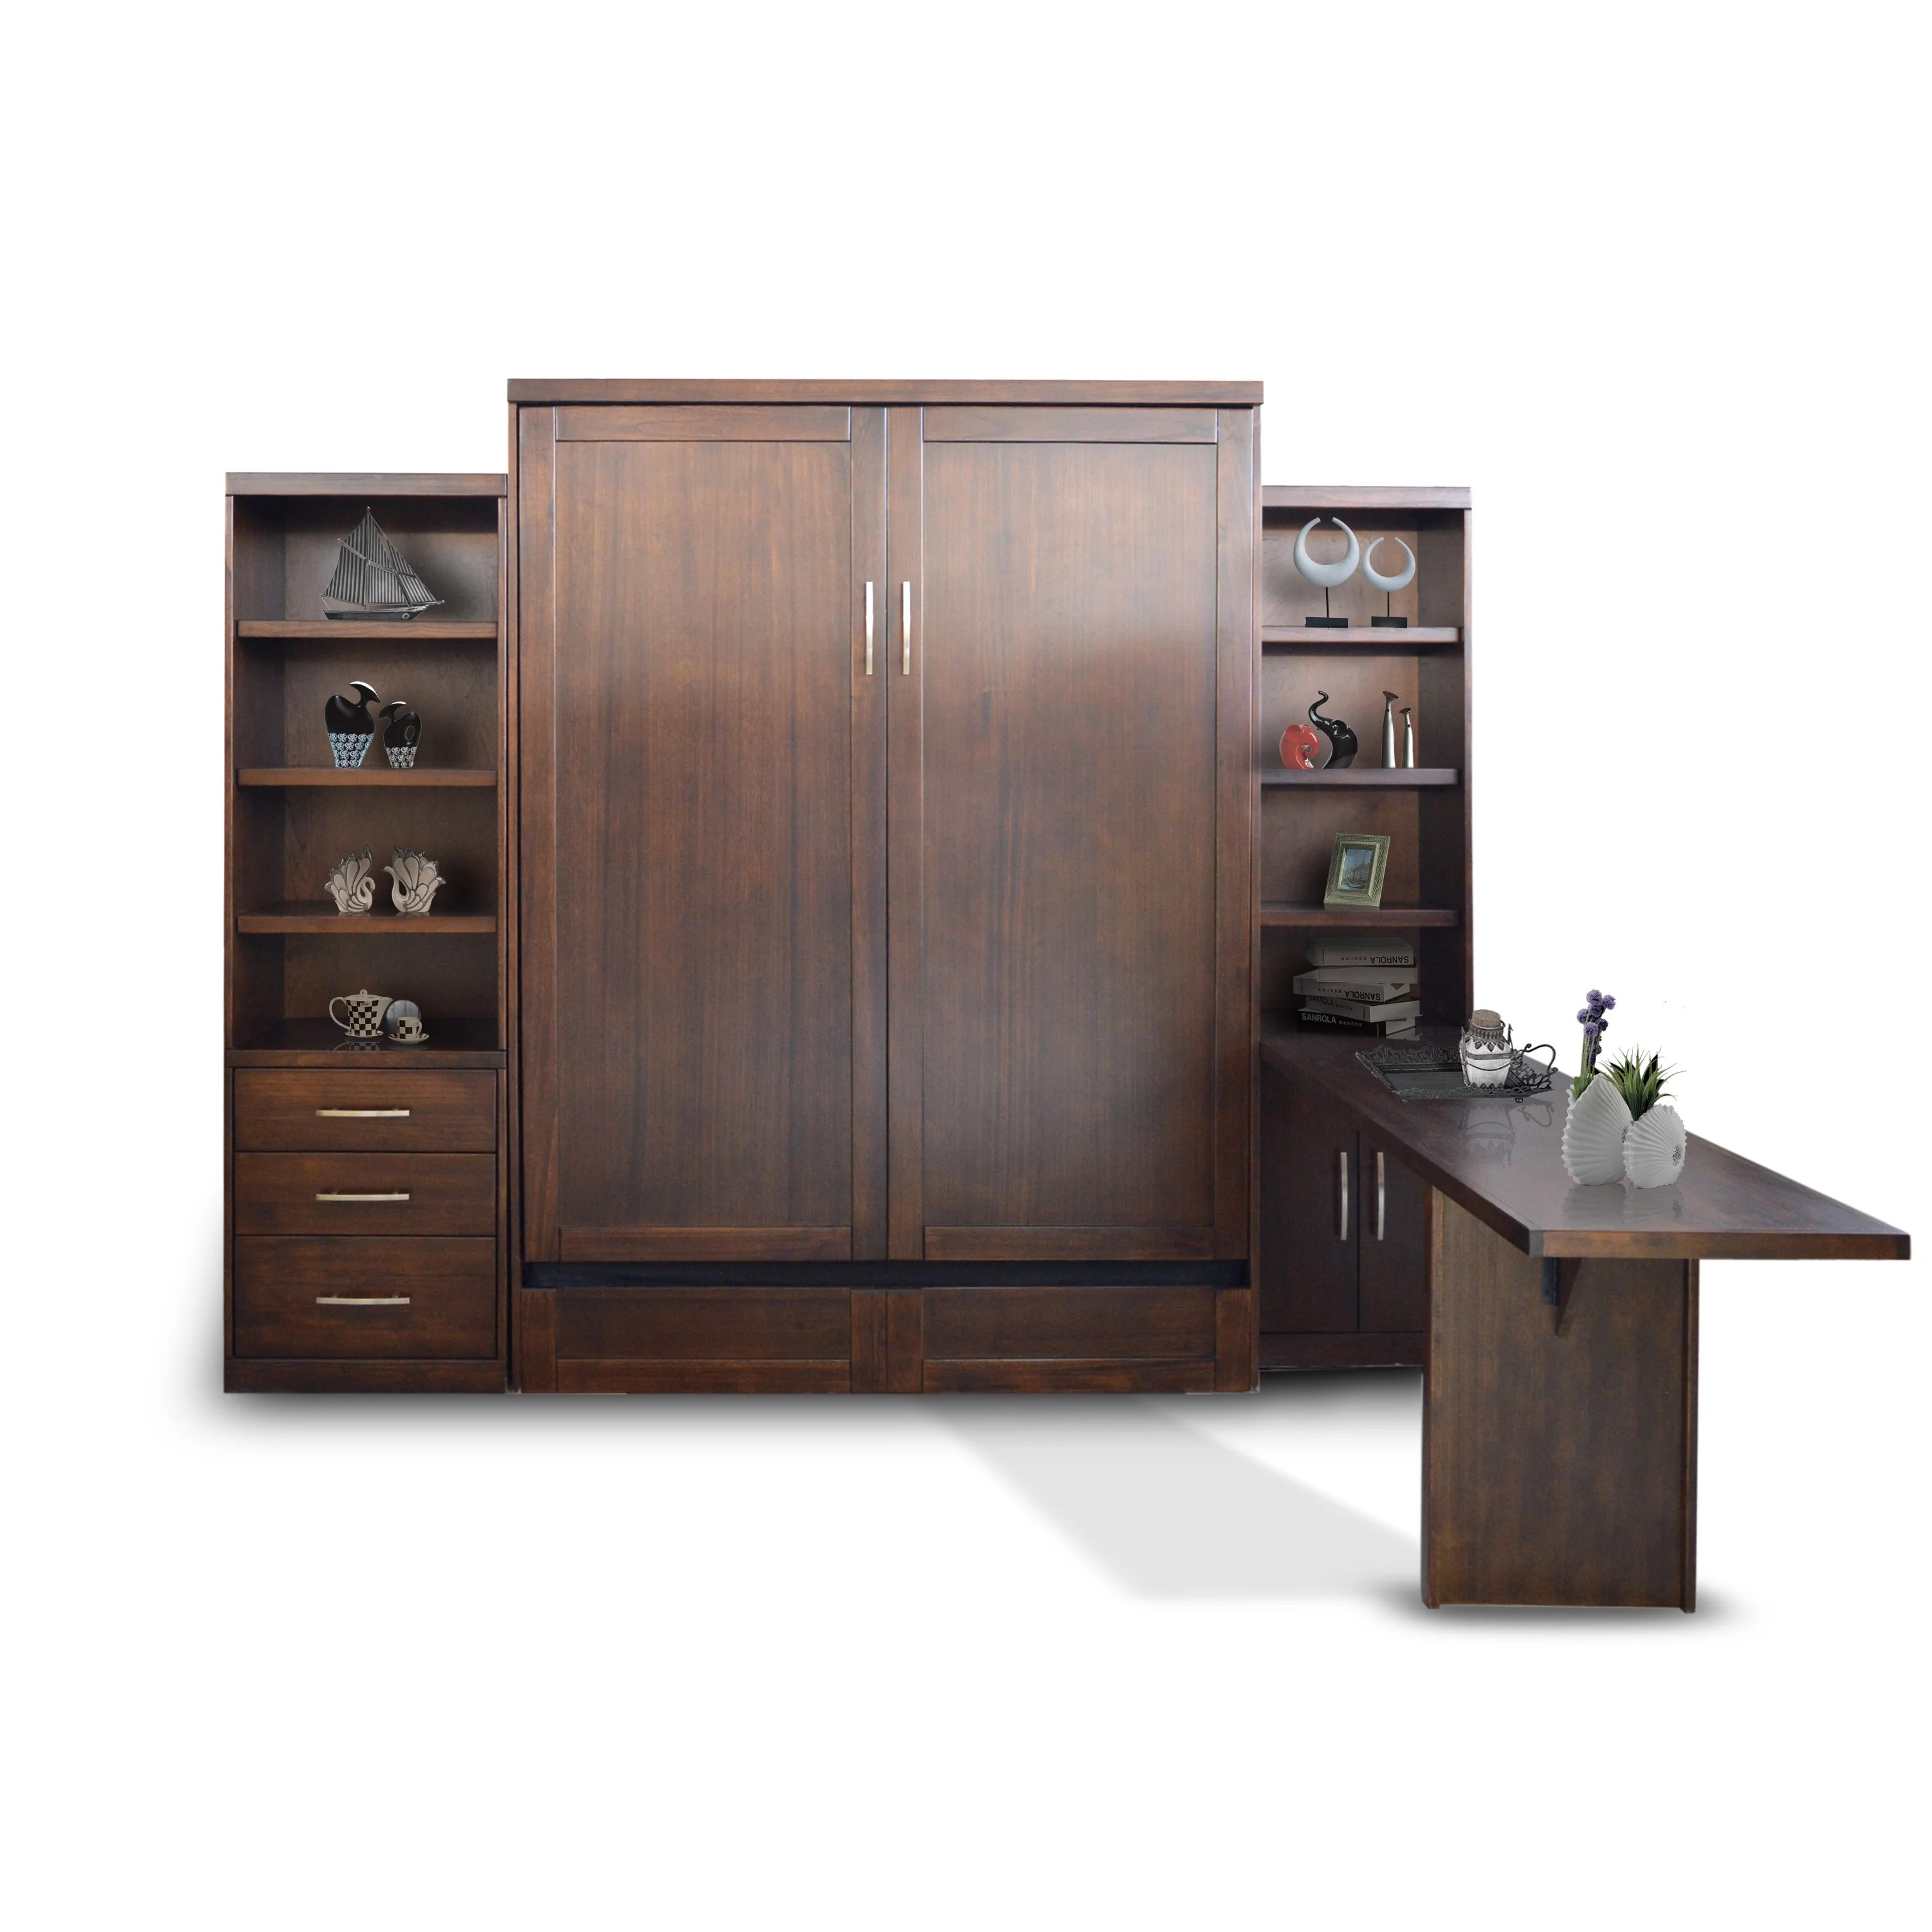 murphy beds c a~ murphy kitchen table Biskupice Queen Murphy Bed